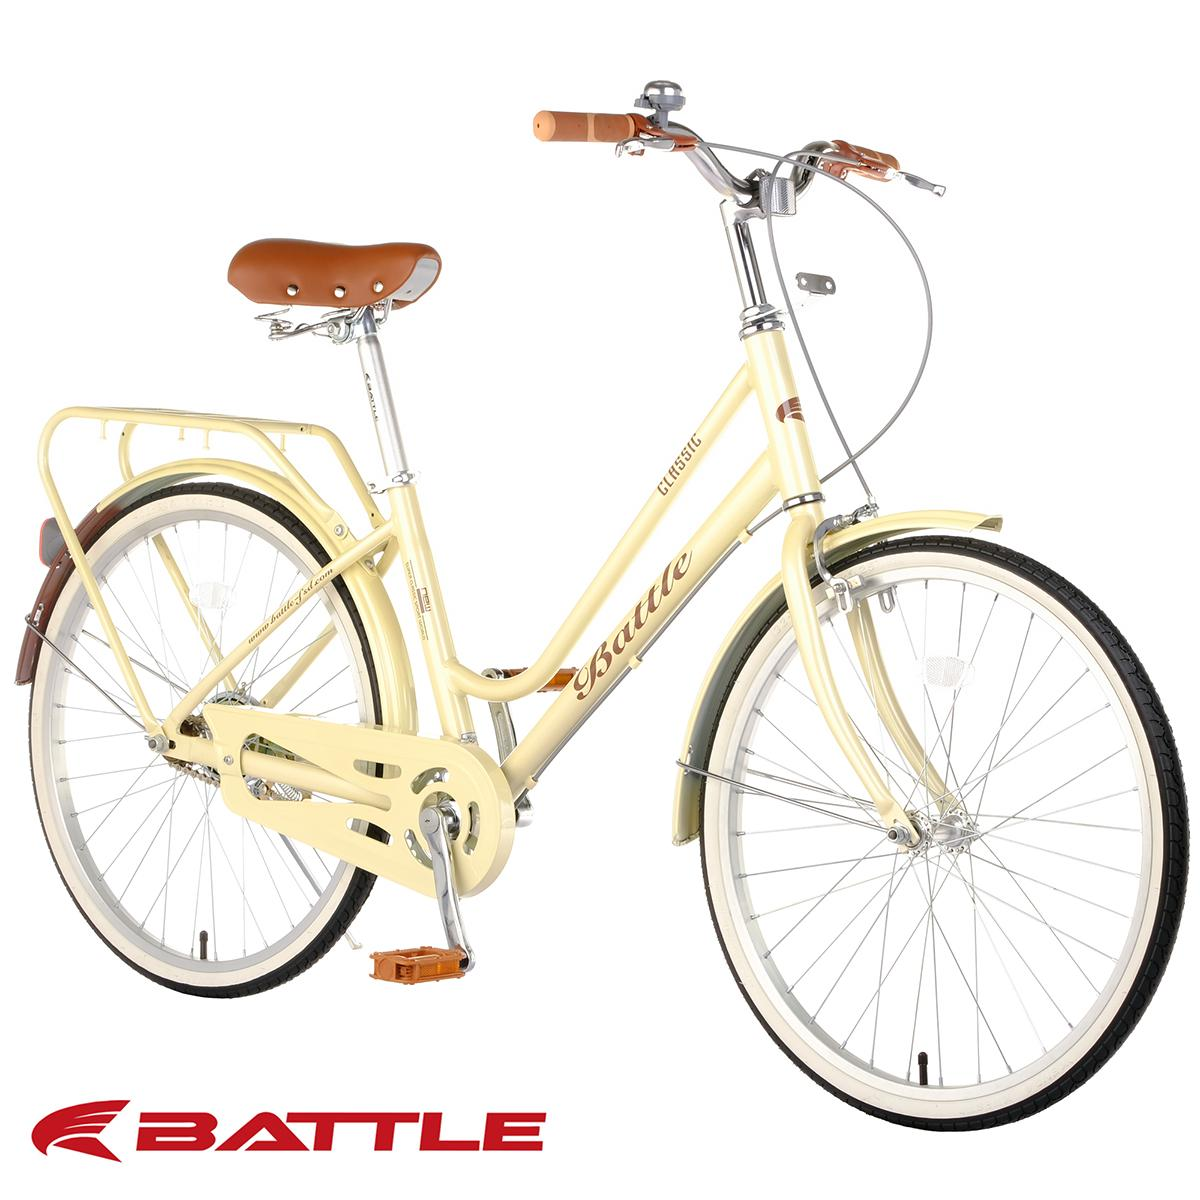 """Battle Classic 24"""" Alloy City Cruiser Bike (Gloss Pearlized Cream)"""